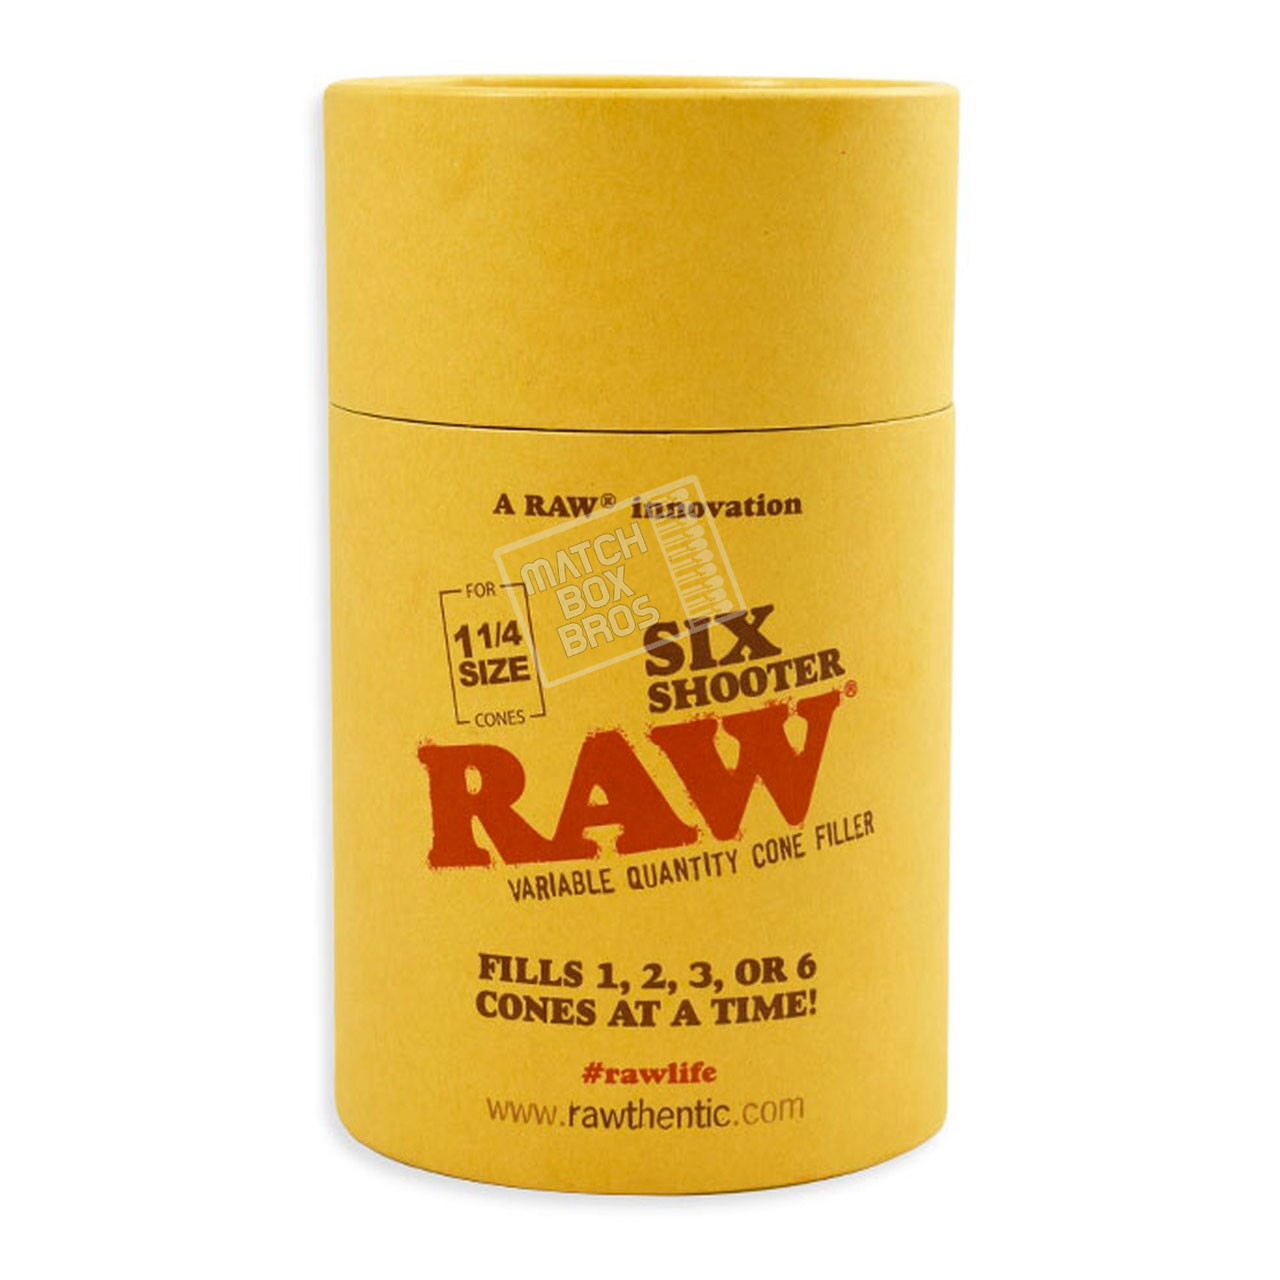 RAW Six Shooter 1 1/4 Size